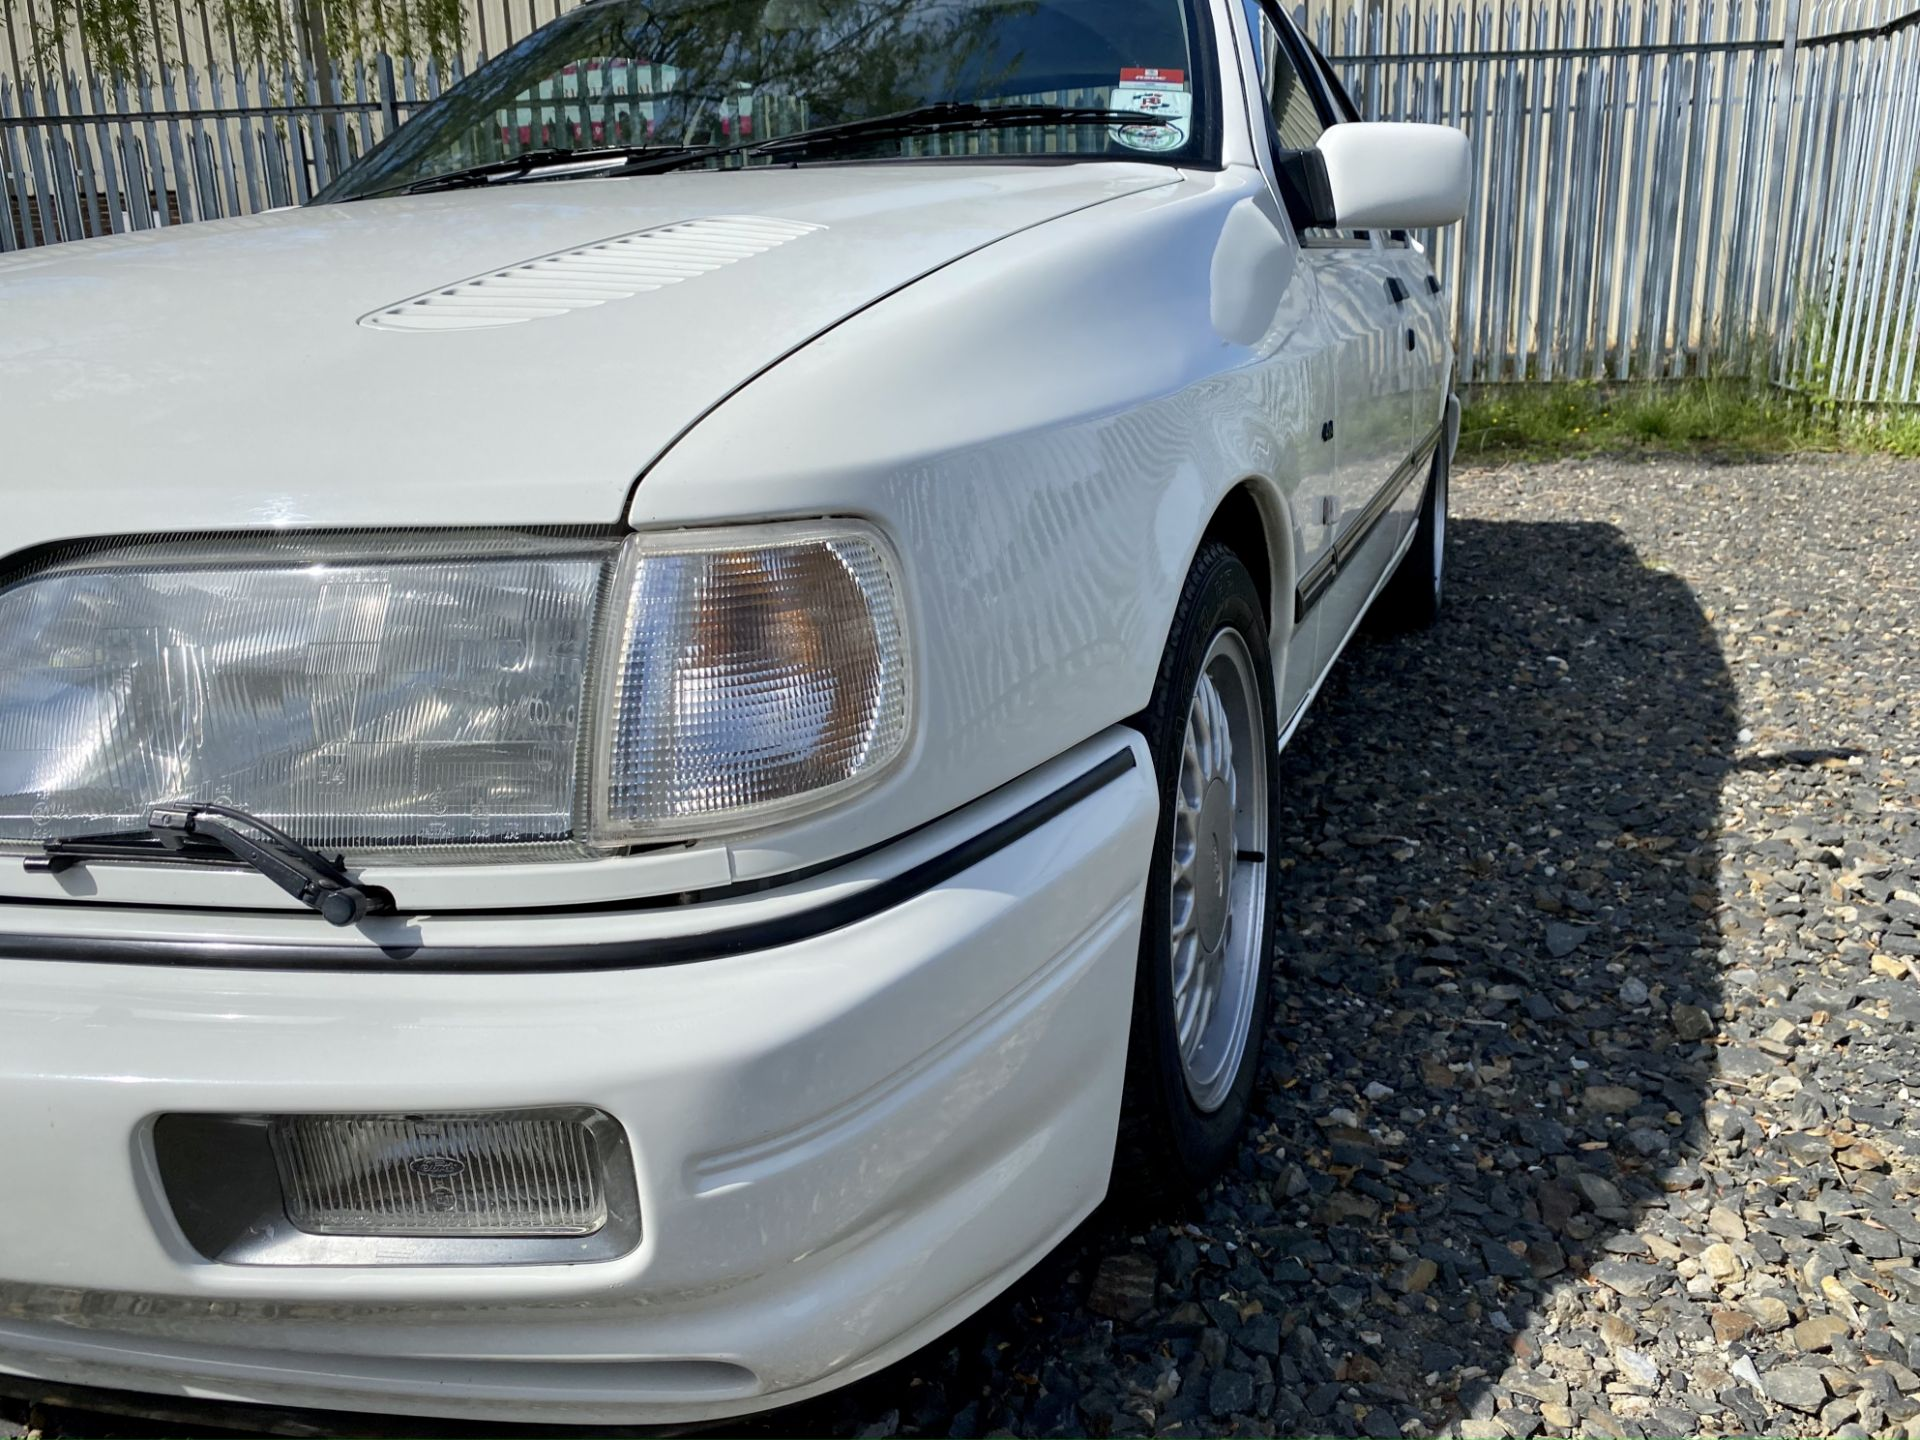 Ford Sierra Sapphire Cosworth 4x4 - Image 24 of 55